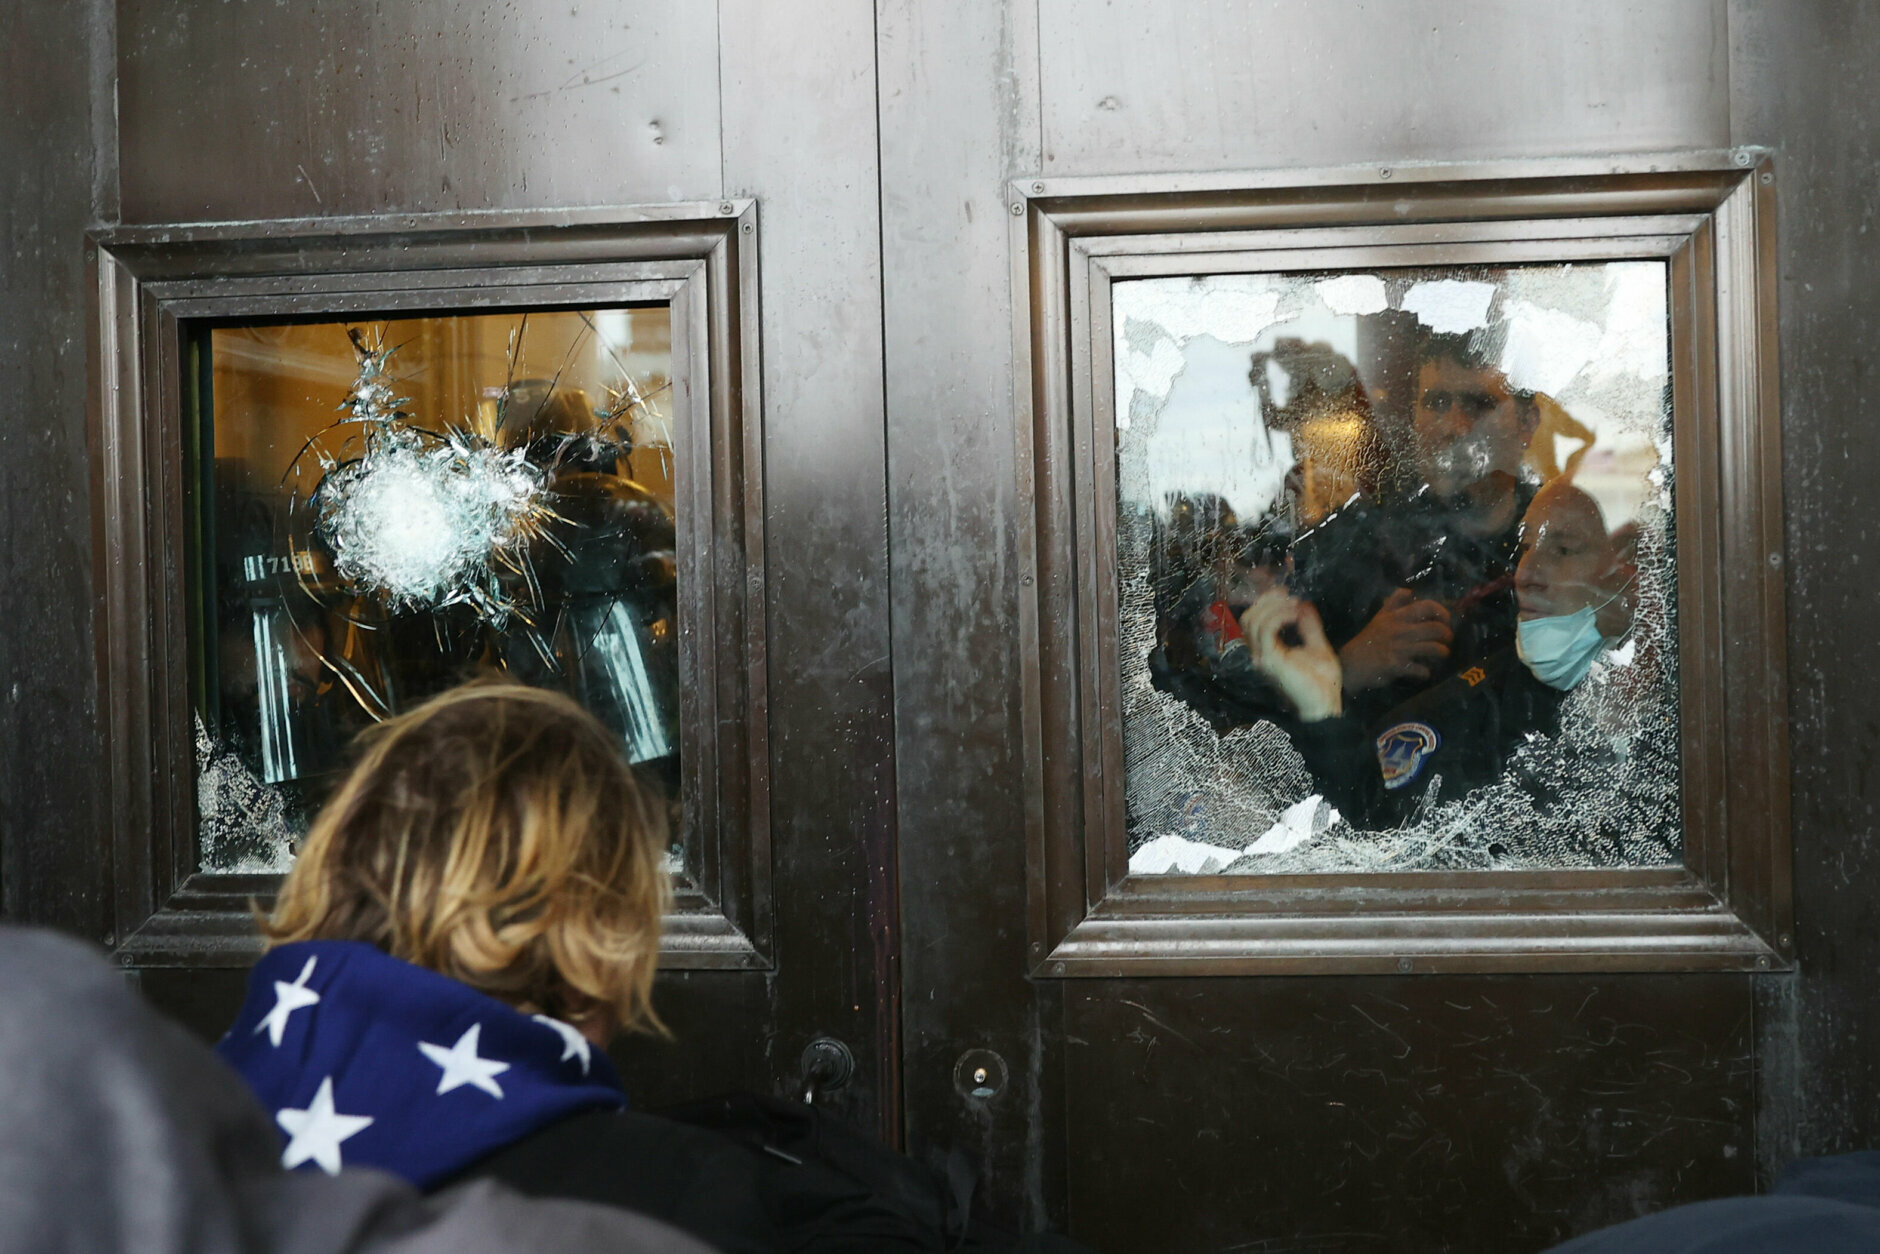 WASHINGTON, DC - JANUARY 06: A Capitol police officer looks out of a broken window as protesters gather on the U.S. Capitol Building on January 06, 2021 in Washington, DC. Pro-Trump protesters entered the U.S. Capitol building after mass demonstrations in the nation's capital during a joint session Congress to ratify President-elect Joe Biden's 306-232 Electoral College win over President Donald Trump. (Photo by Tasos Katopodis/Getty Images)